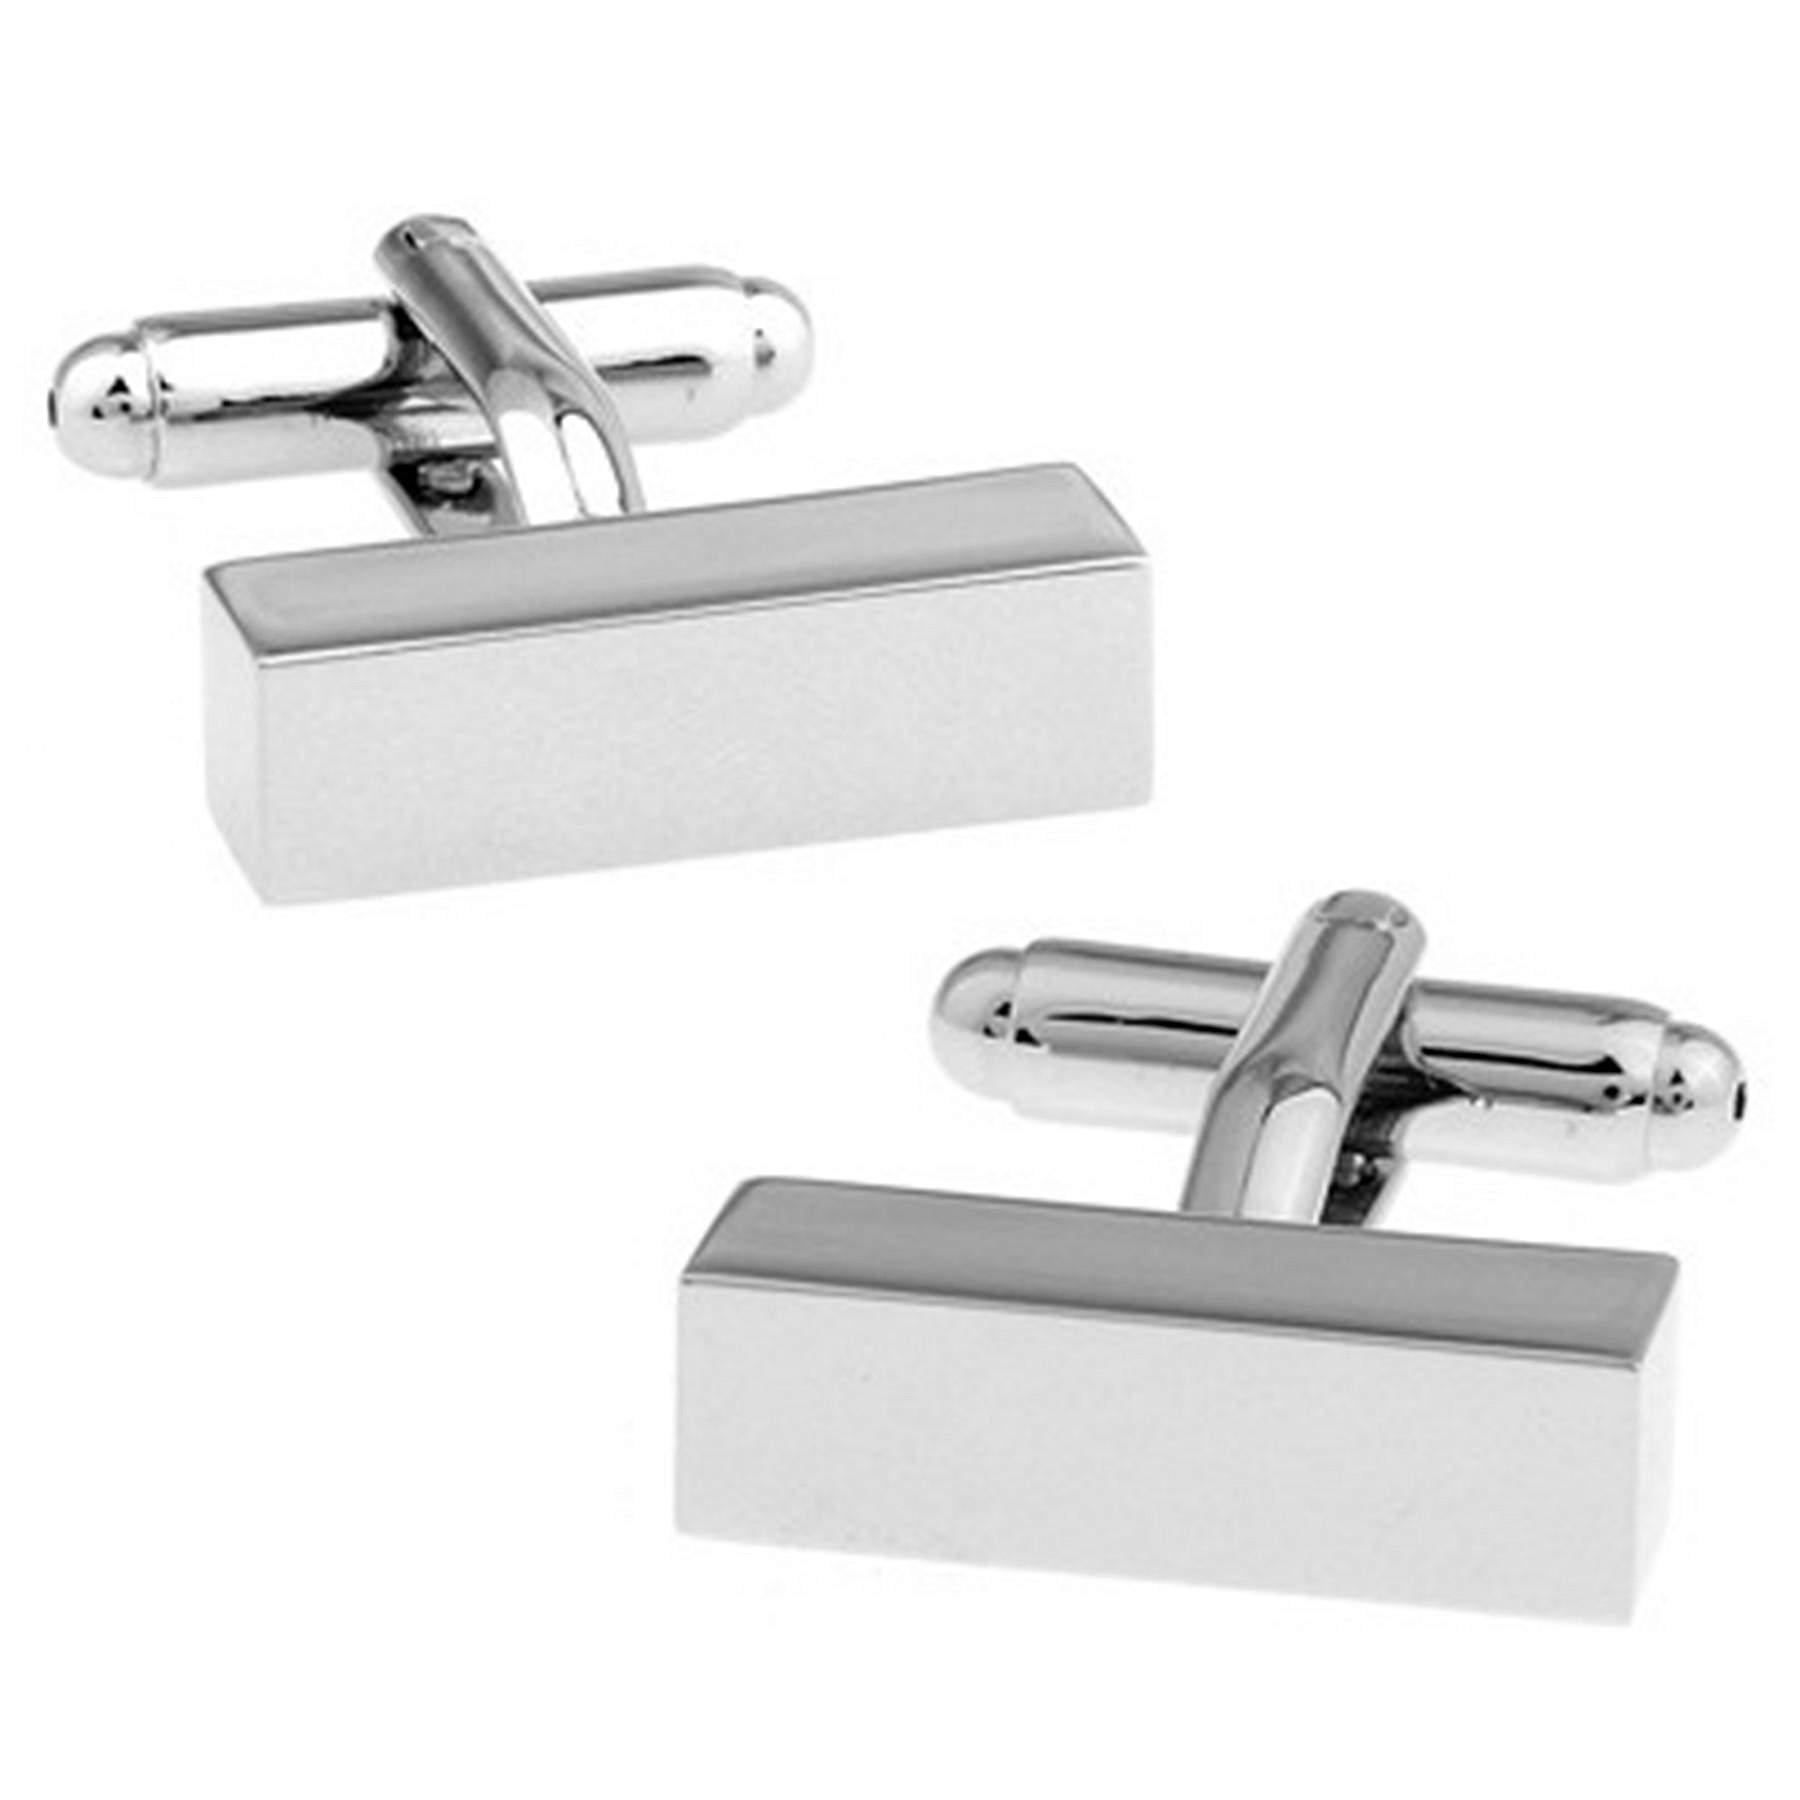 RXBC2011 Men's Rectangle Style French Shirts Cufflinks 1 Pair Set